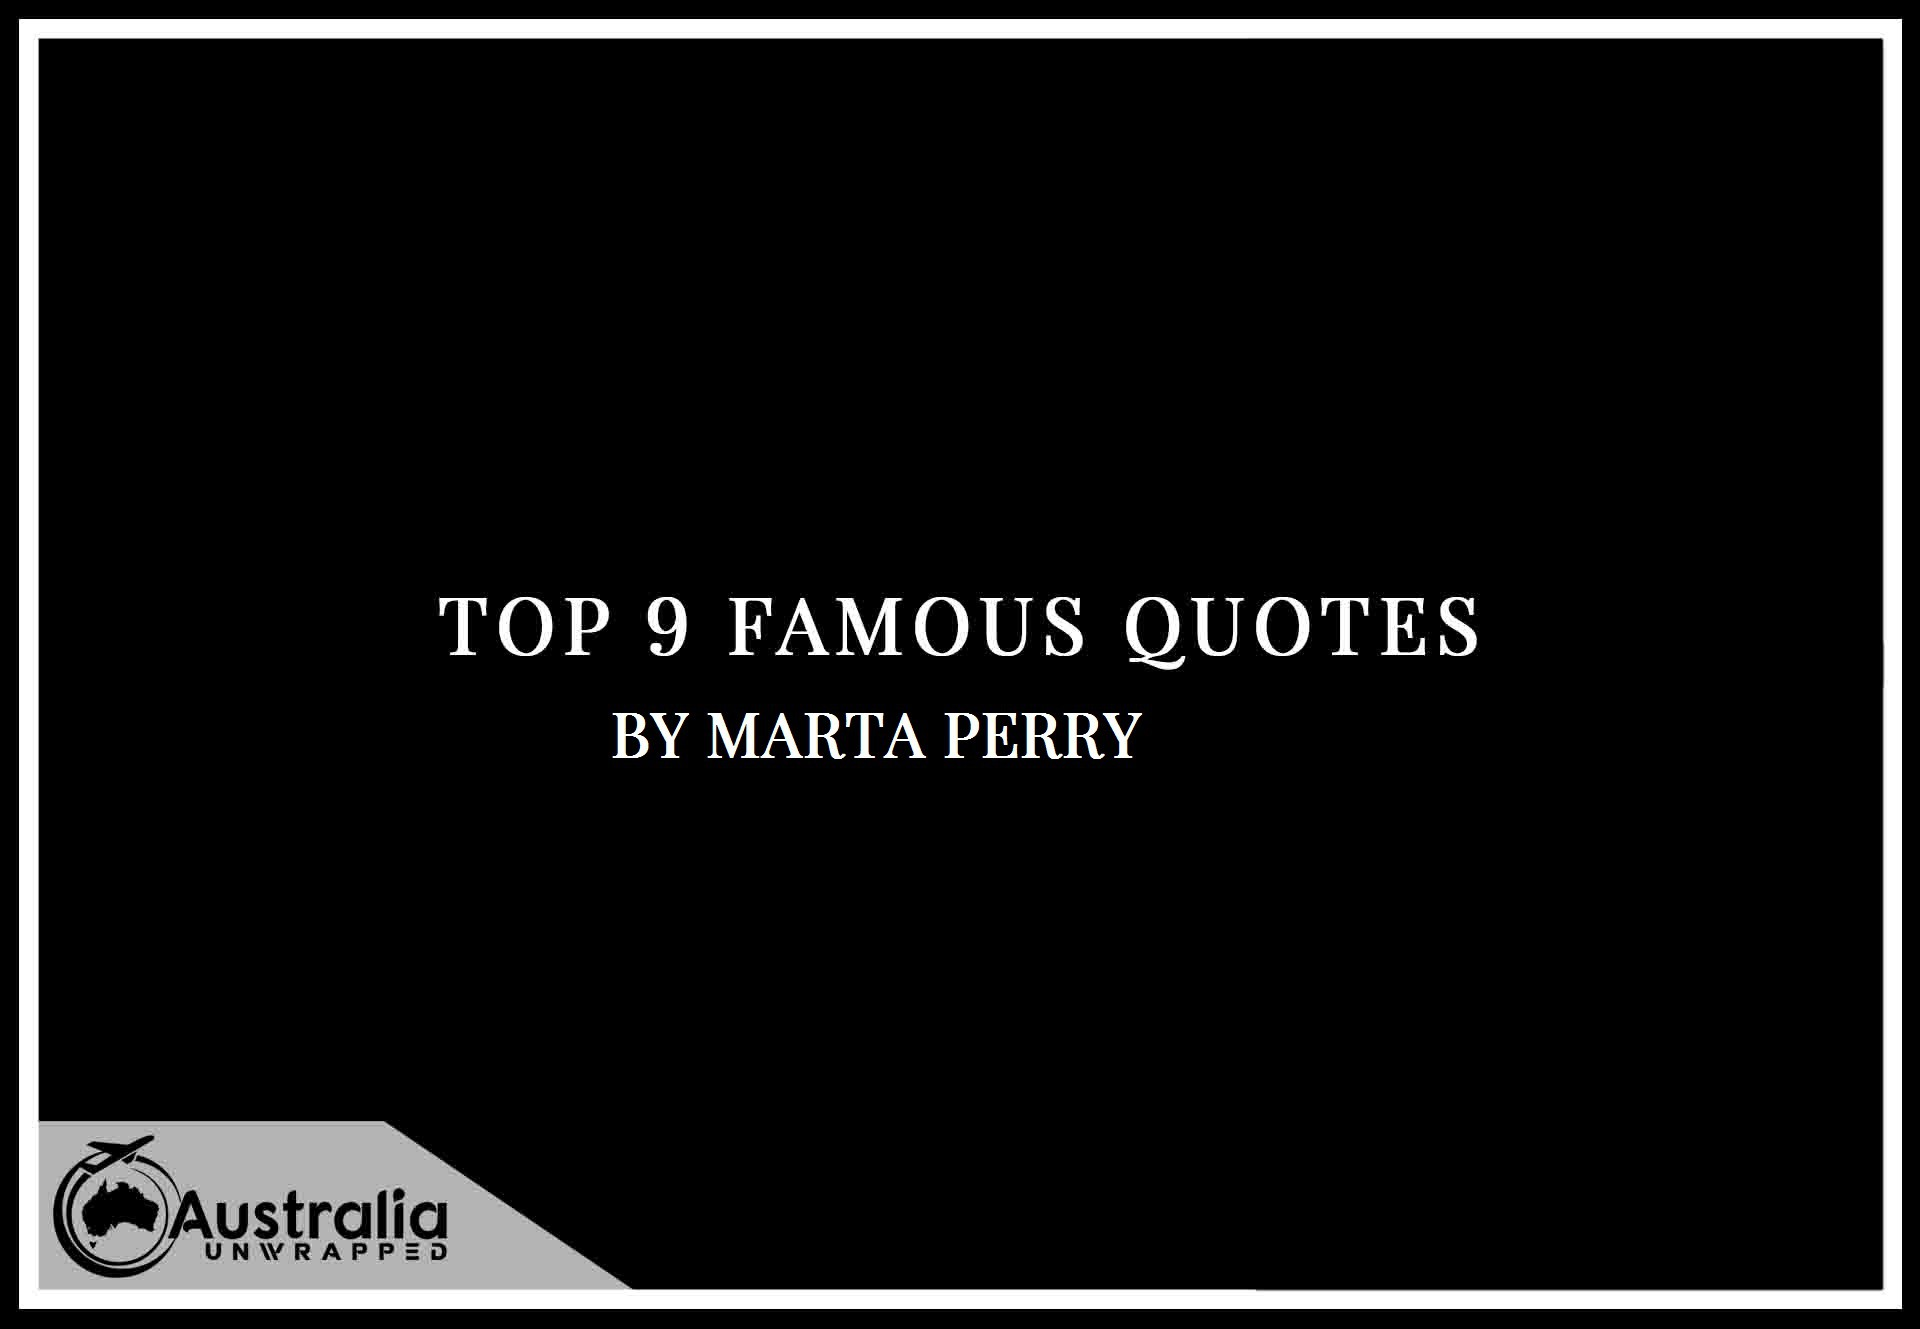 Marta Perry's Top 9 Popular and Famous Quotes